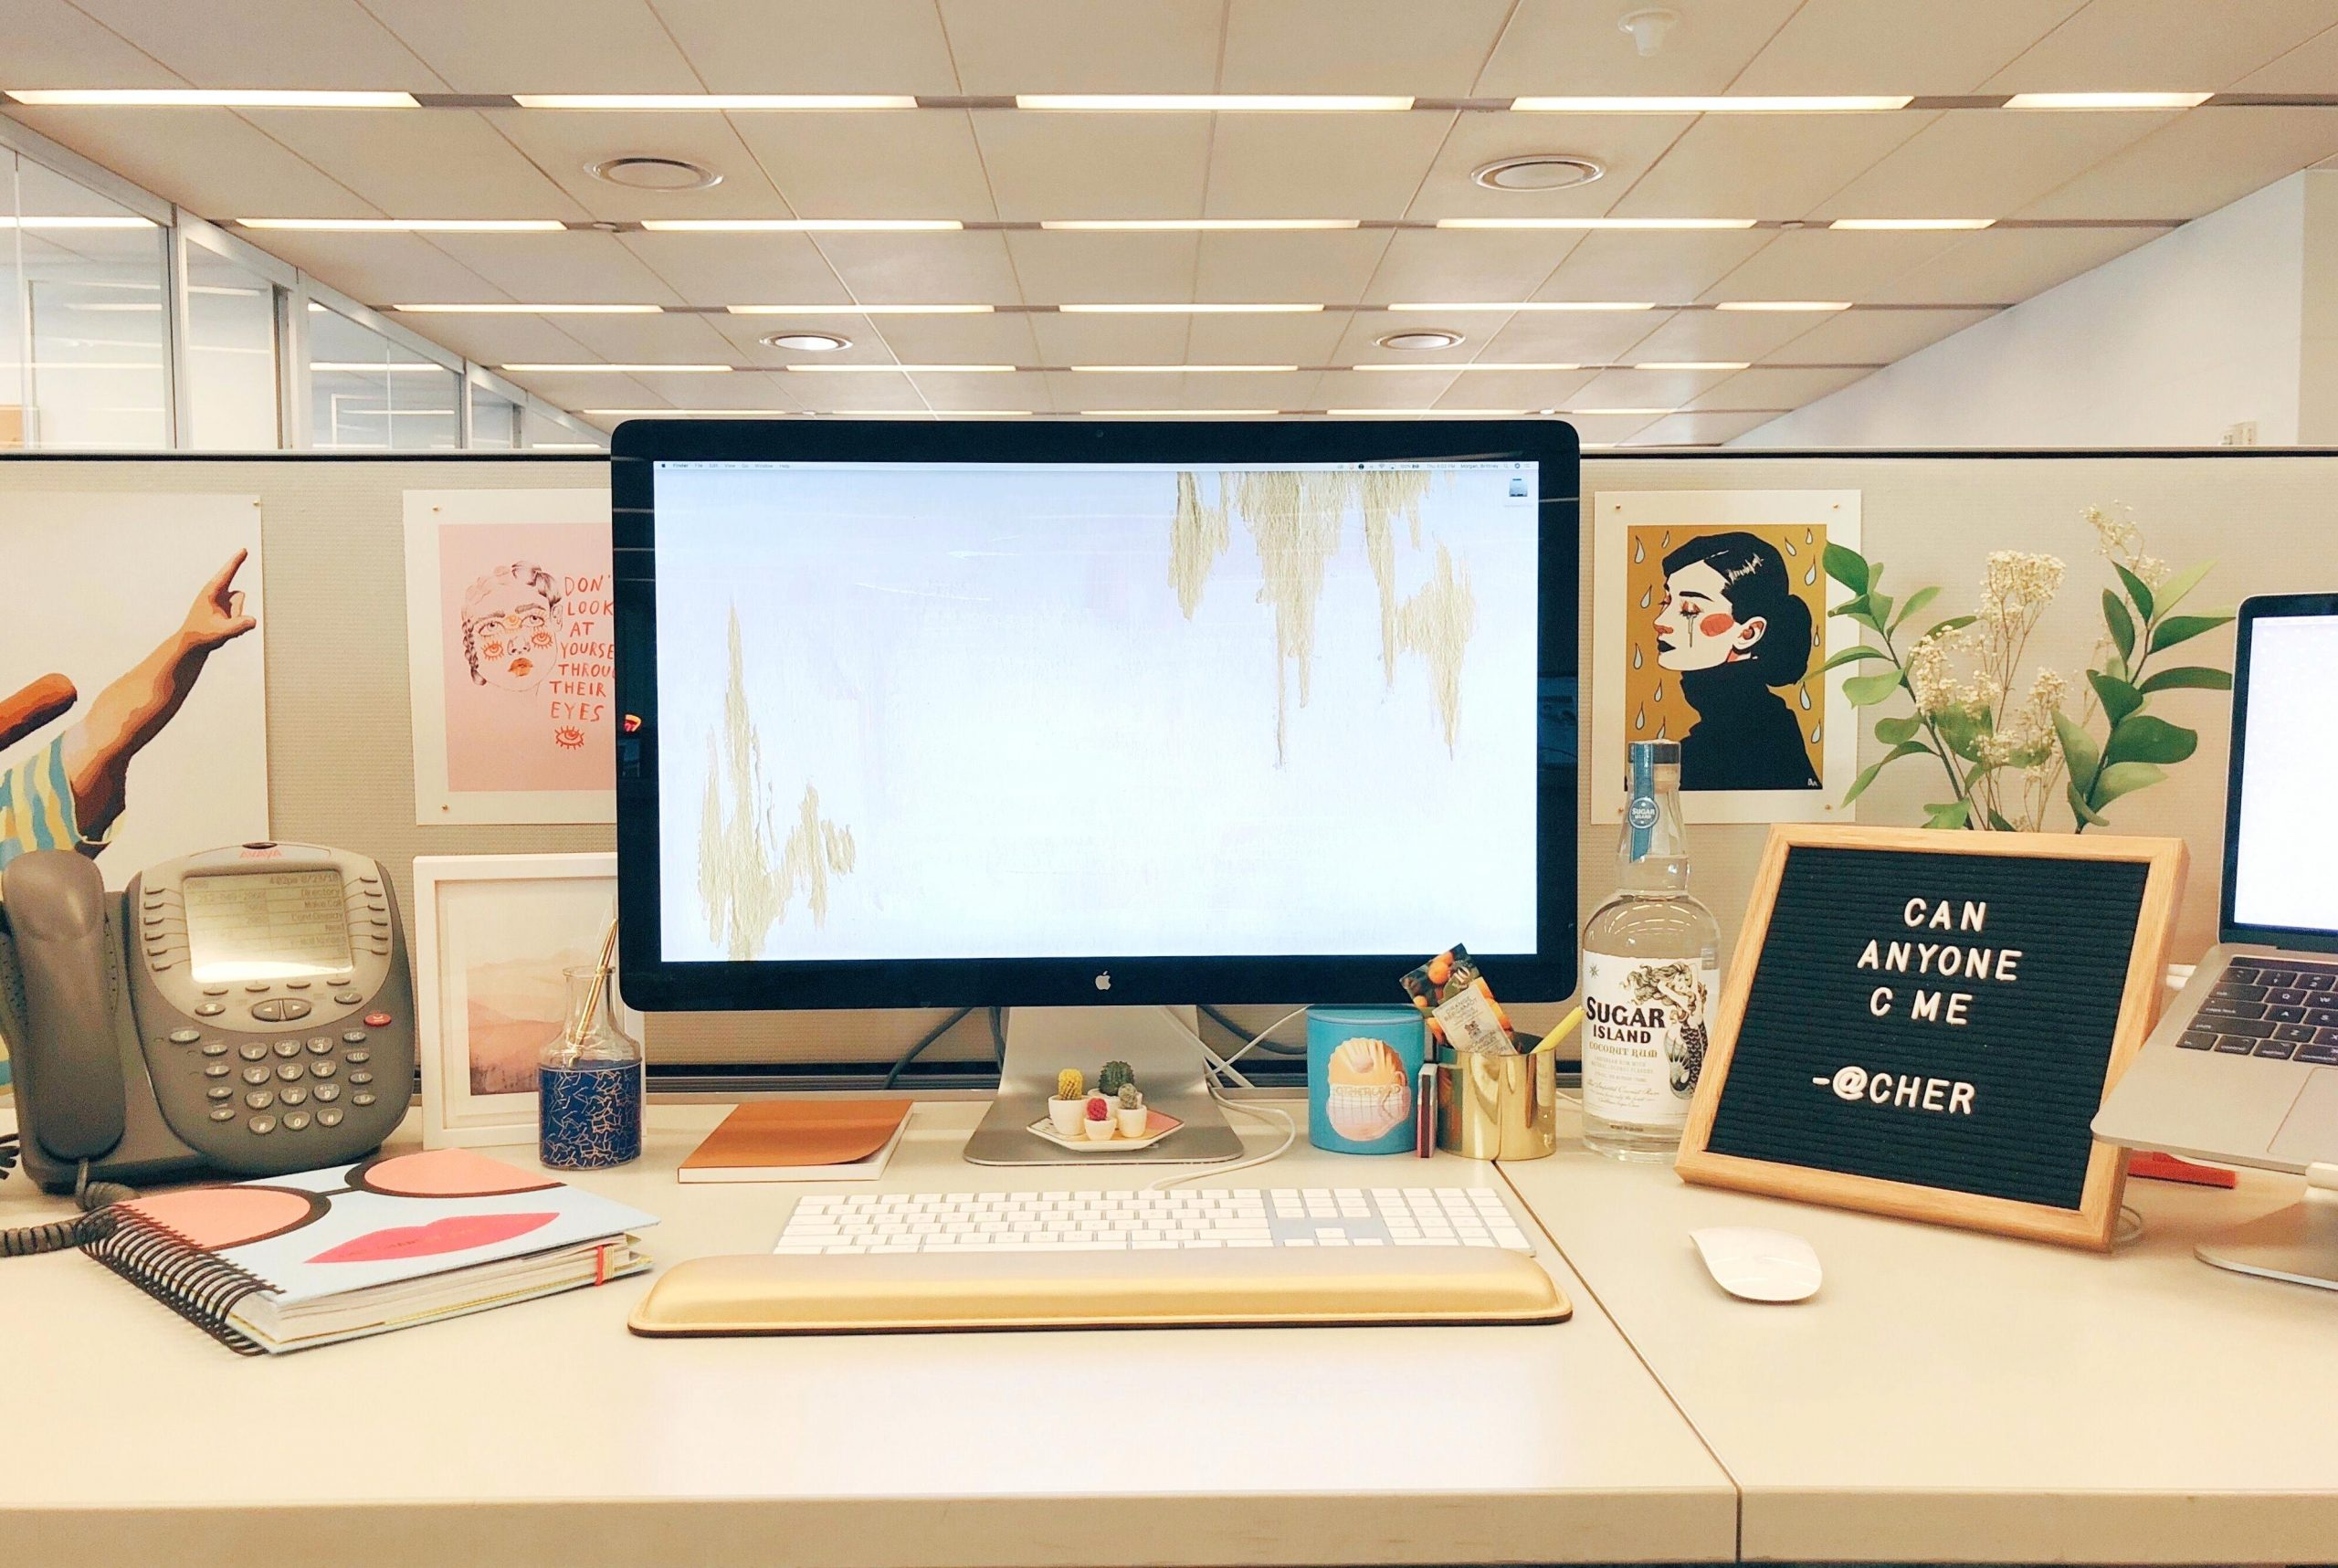 Best Cubicle Decor Ideas In How To Decorate Your Cubicle Work Cubicle Decorating Decorating Your Work Cubicle For Halloween Useful Diy Projects,How To Design An Office Chair